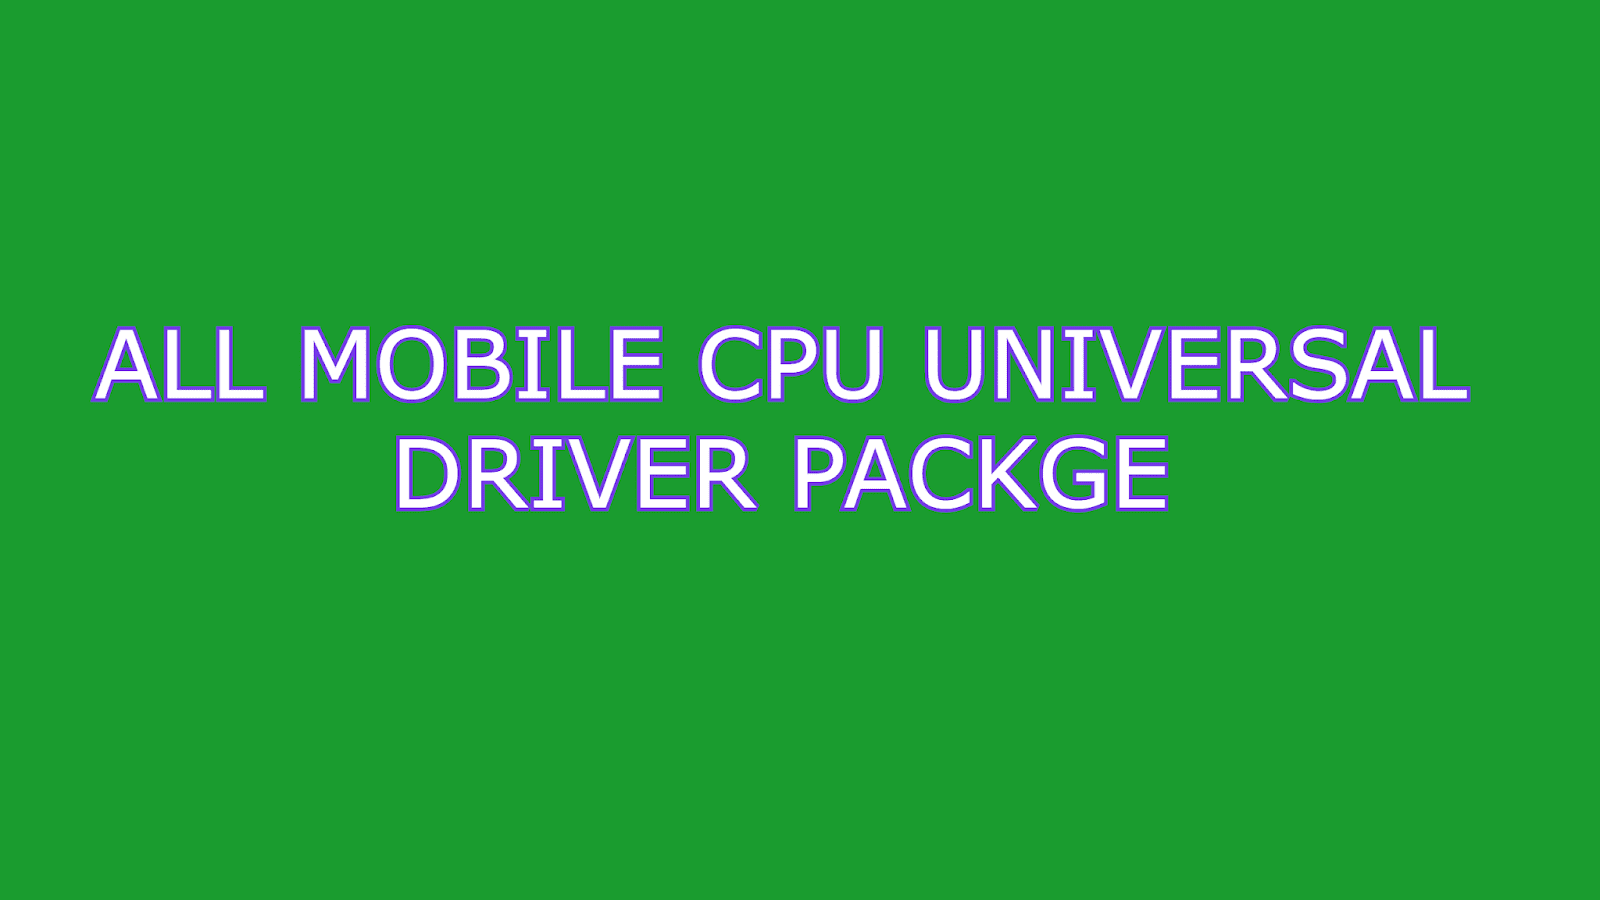 drivers,box drivers,miracle box drivers,adb driver,box driver 1.7.0,all volcano box drivers,drivers z3x box,miracle box driver,drivers sigma box,mtk usb driver,octoplus box drivers problem,z3x box drivers installation,miracle box usb driver,how to install octoplus box drivers,how to install easy jtag box drivers,qualcomm drivers infinity box,driver ed in a box